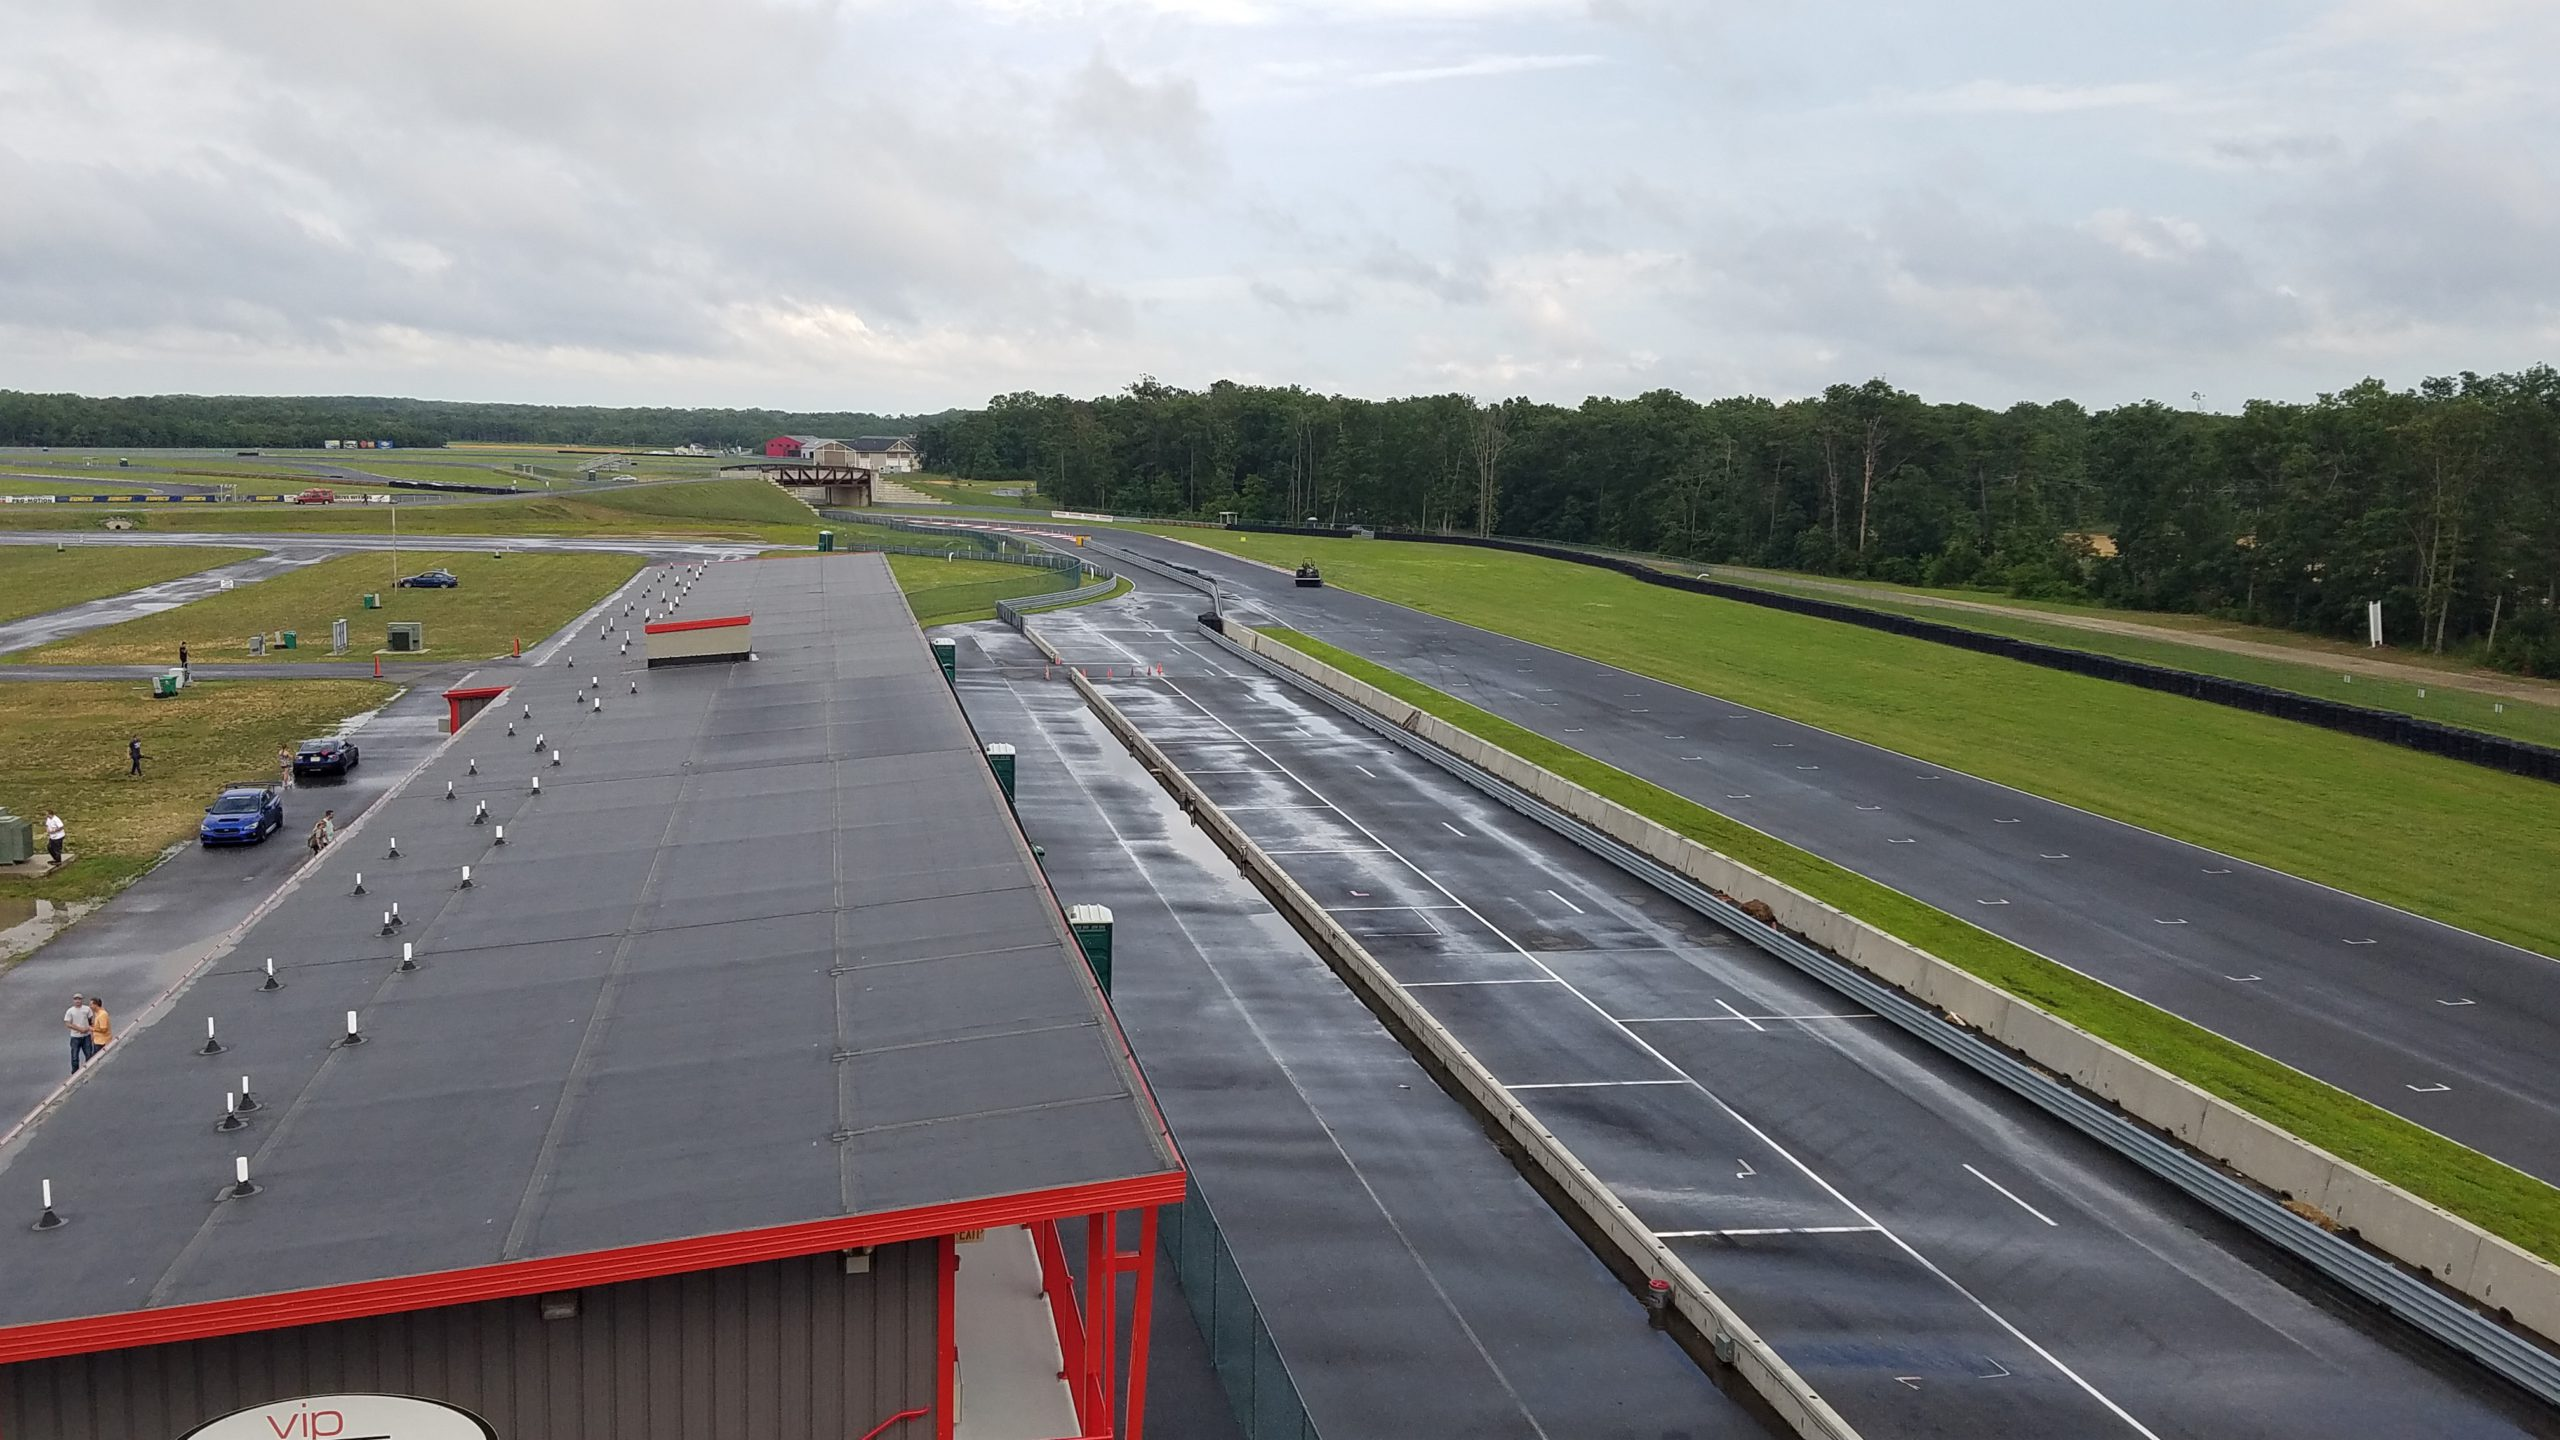 Aerial view of wet race track for track days